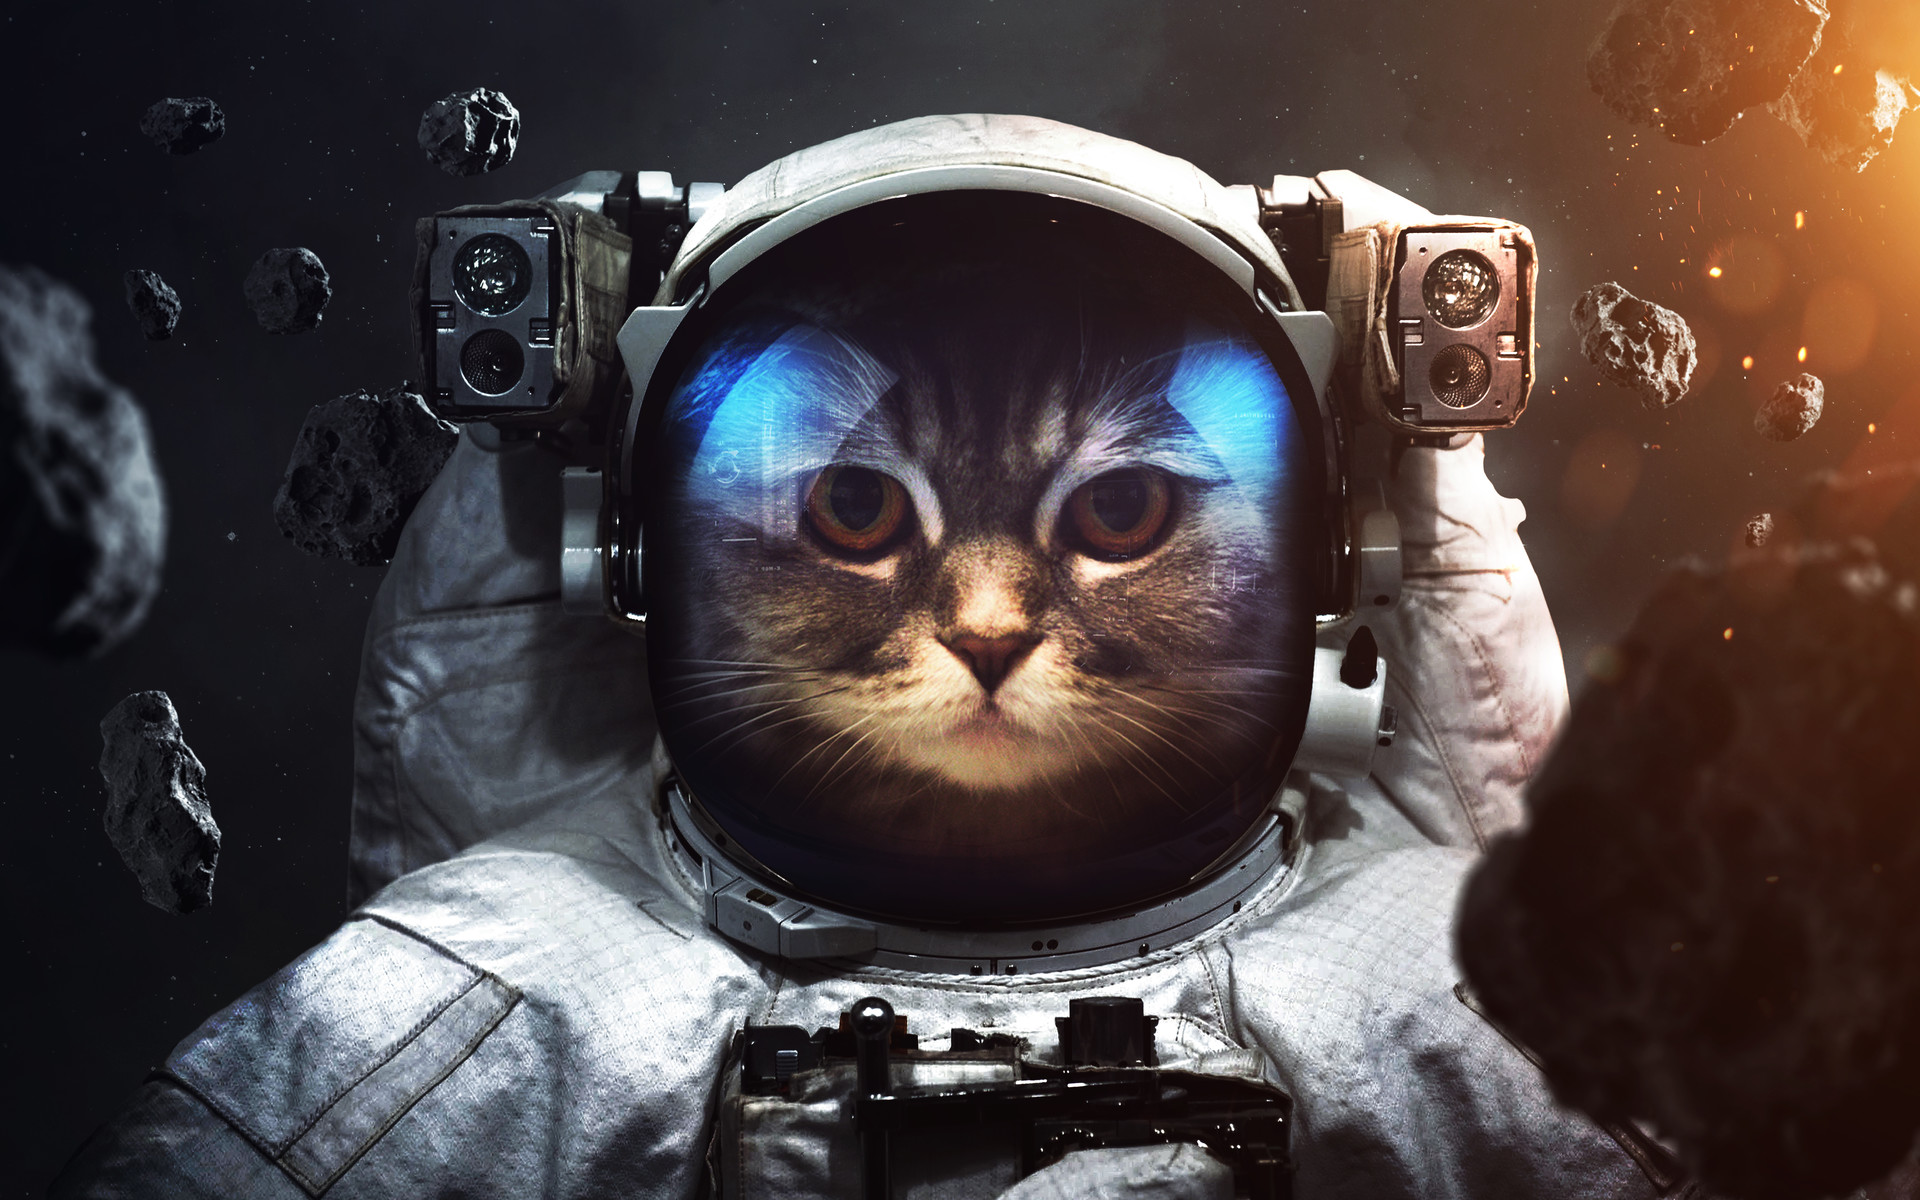 animals in space nasa - HD 1920×1200